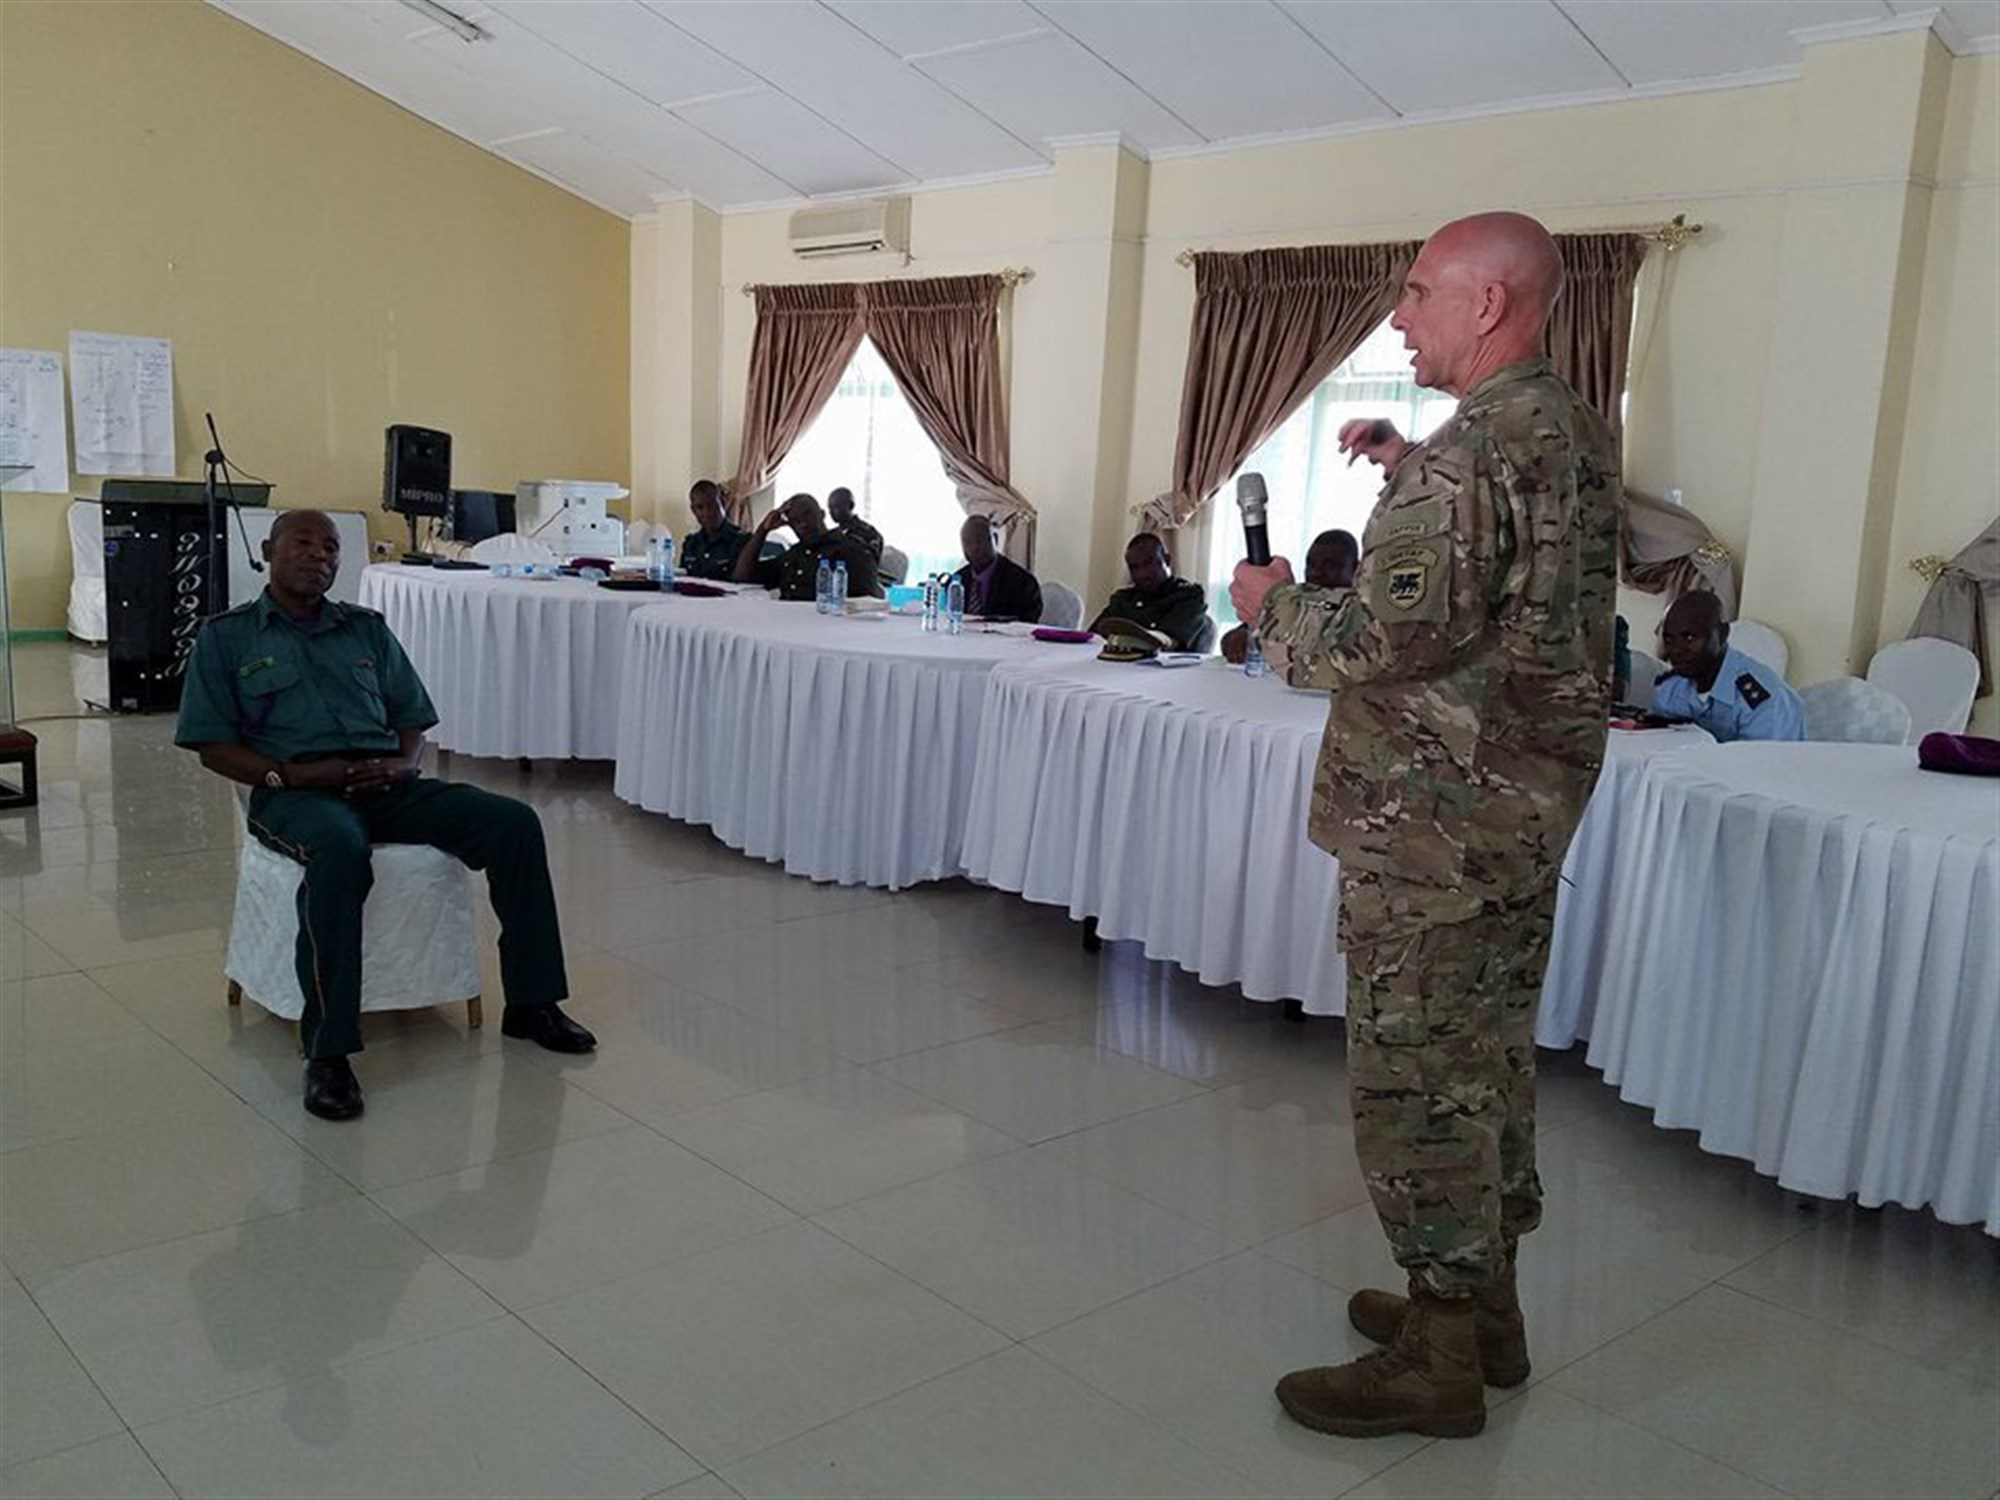 Warrant Officer Class 1 Wirgan Mwape from the Zambian Defense Force, left, and Chaplain (Col.) David Lile, the U.S. Army Africa command chaplain, right, participate in a suicide prevention training exercise during a seminar attended by USARAF and Zambian Defense Force chaplains in Lusaka, Zambia, Jan. 23-25, 2018. During the seminar, the chaplains discussed peacekeeping operations deployment cycle support and the emotional and spiritual stresses of combat on the African continent. (Courtesy photo)